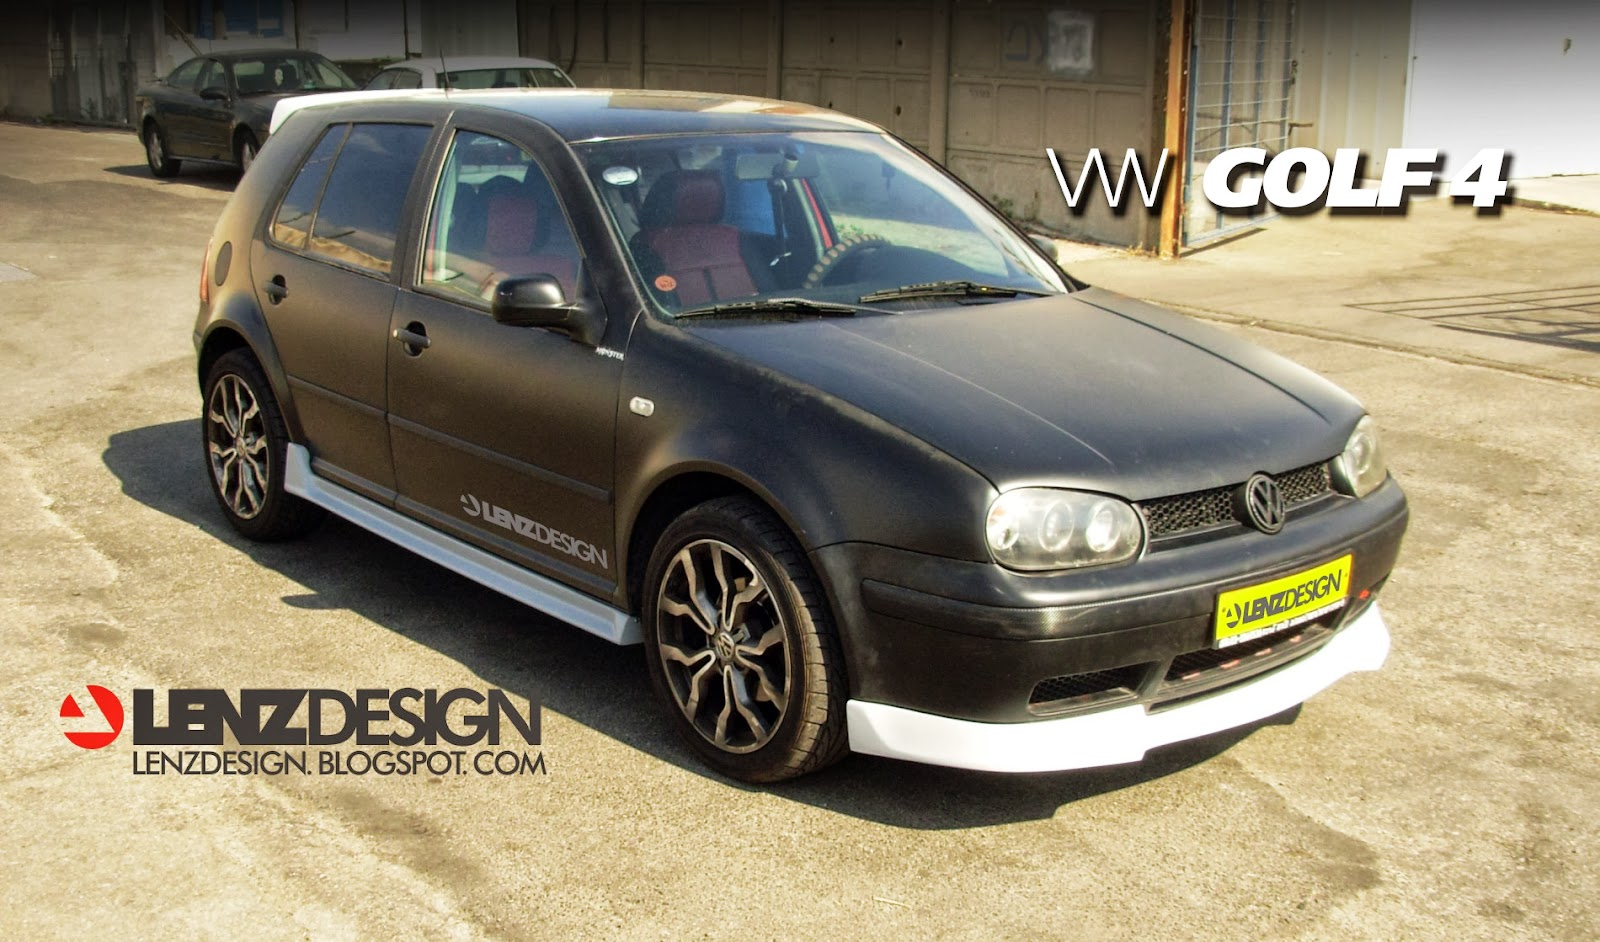 VW Golf 4 Tuning Lenzdesign. שיפורים חיצוניים לרכב - Auto Cars Benz